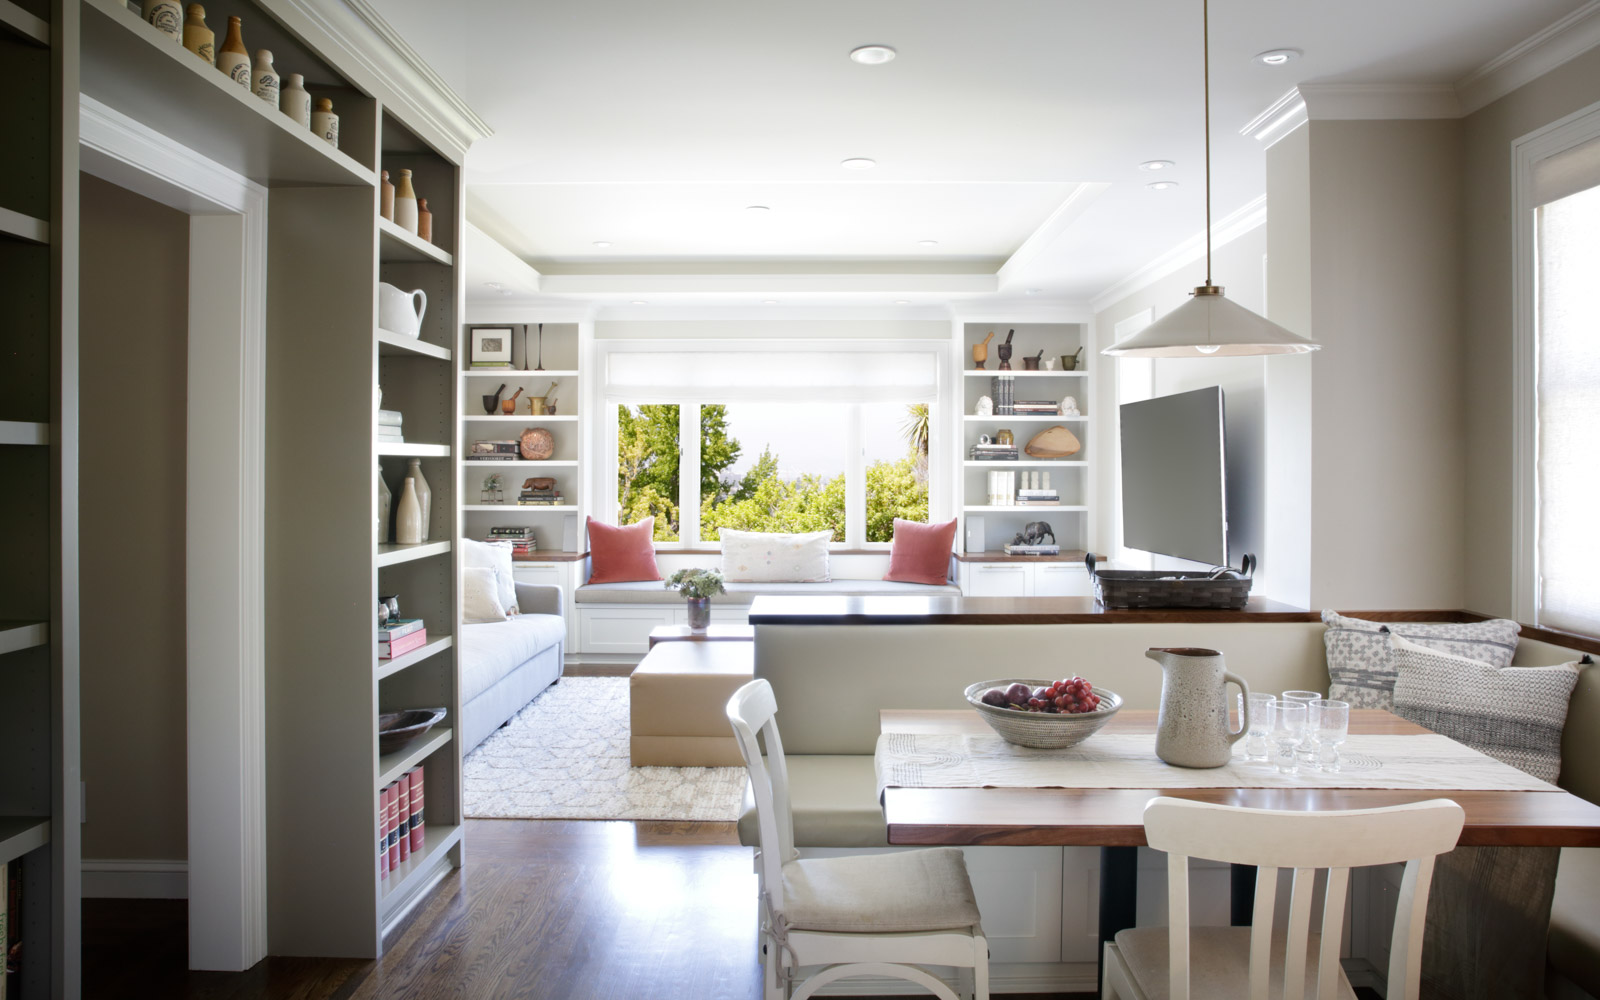 View of dining room and living room from kitchen, custom shelving collection displays, modern family design by Laura Martin Bovard Interior Design Firm, Piedmont / Oakland